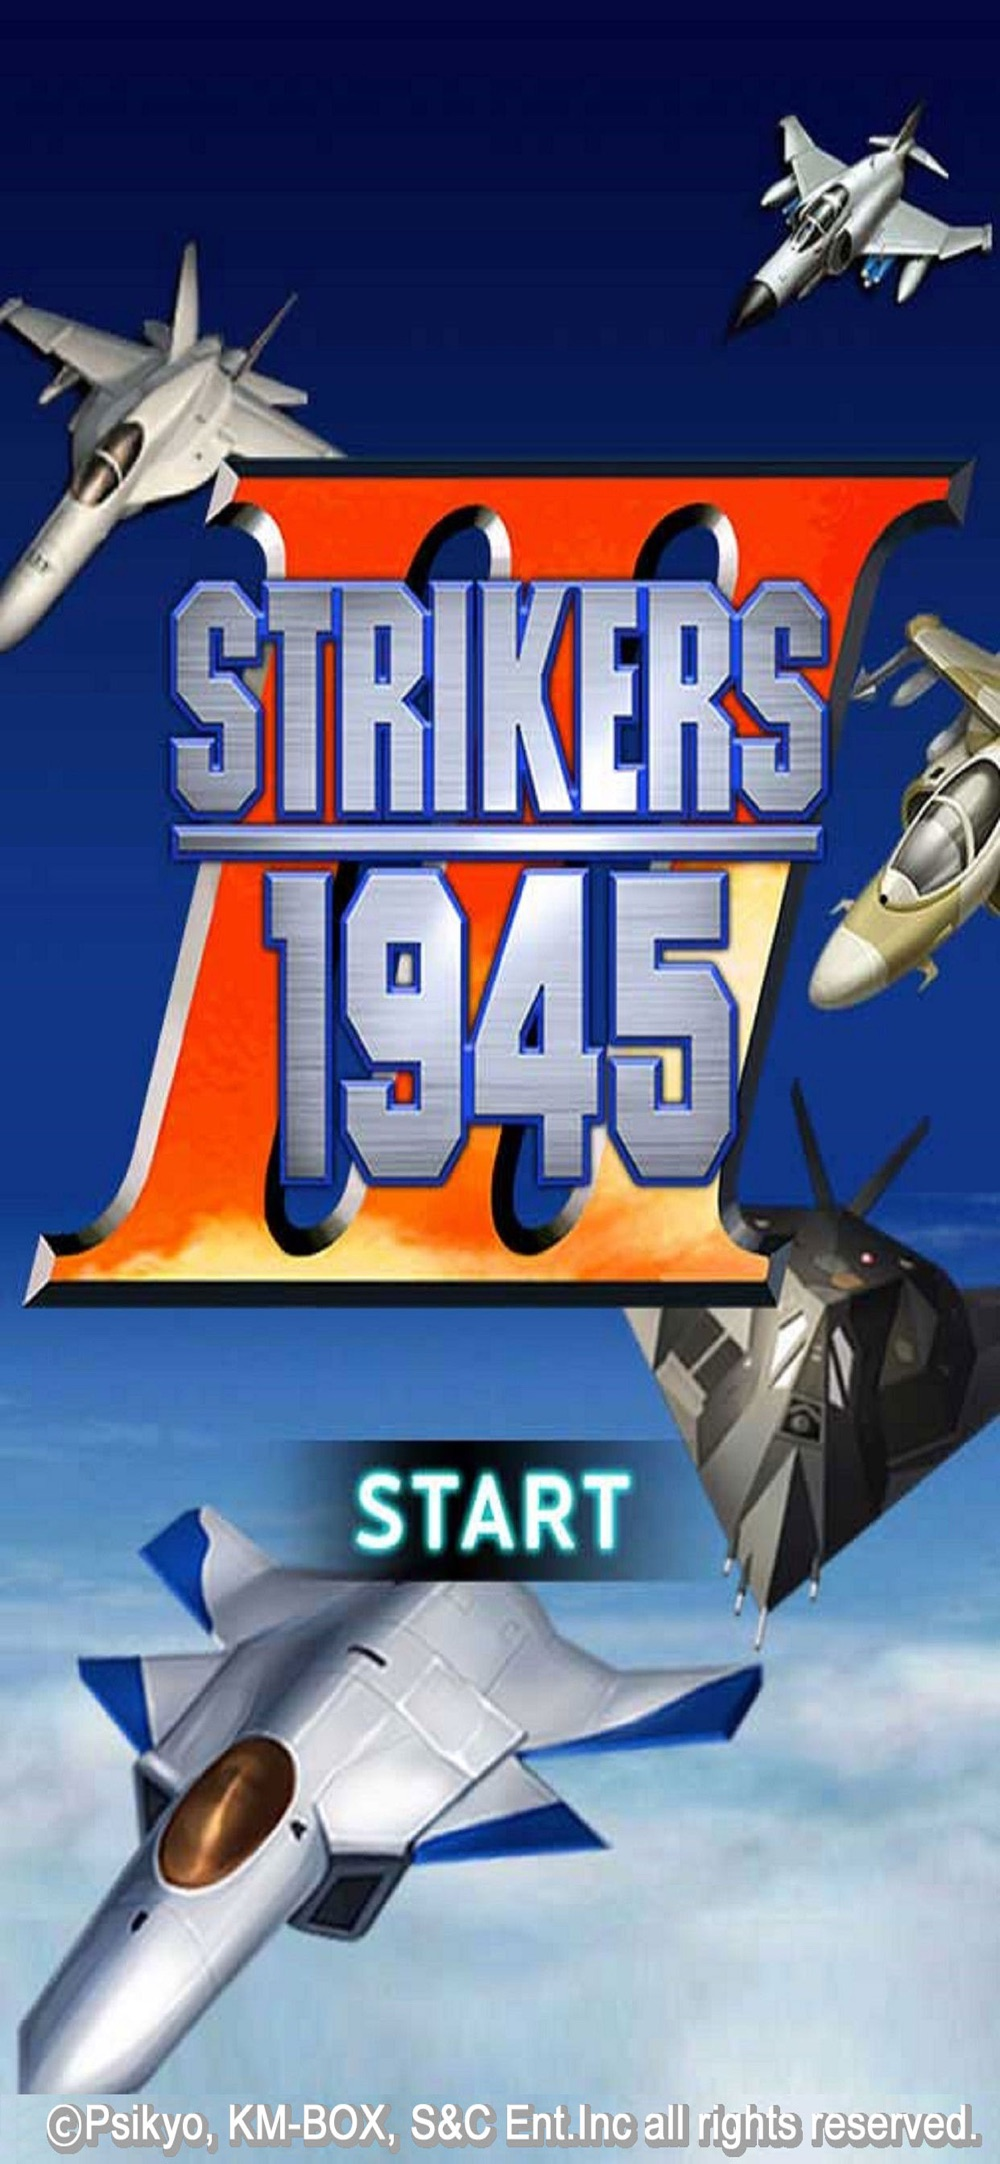 STRIKERS 1945-3 Cheat Codes